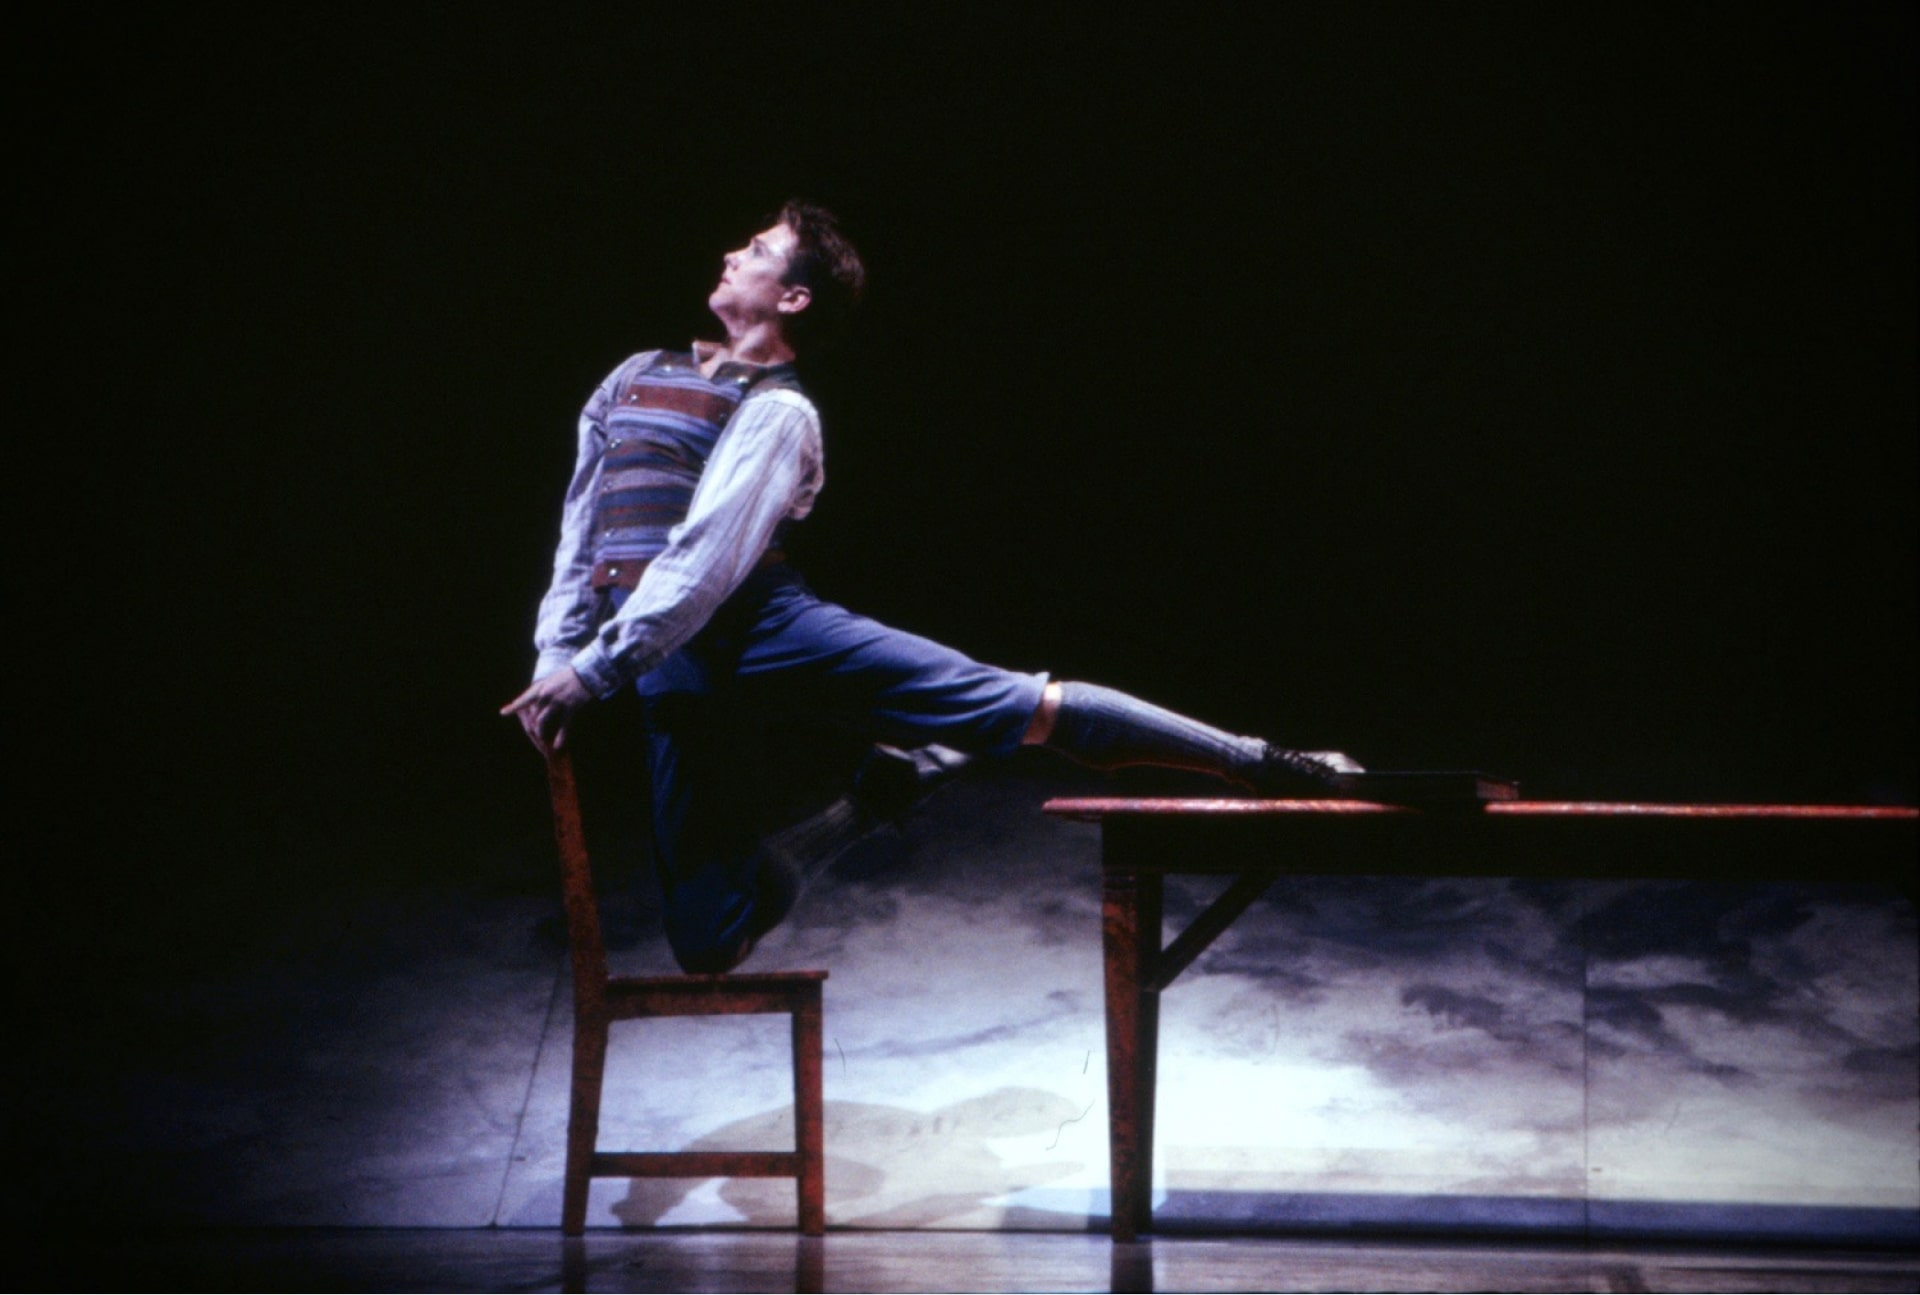 Dancer in schoolboy attire poses balanced between chair and table, in front of mottled raked stage.